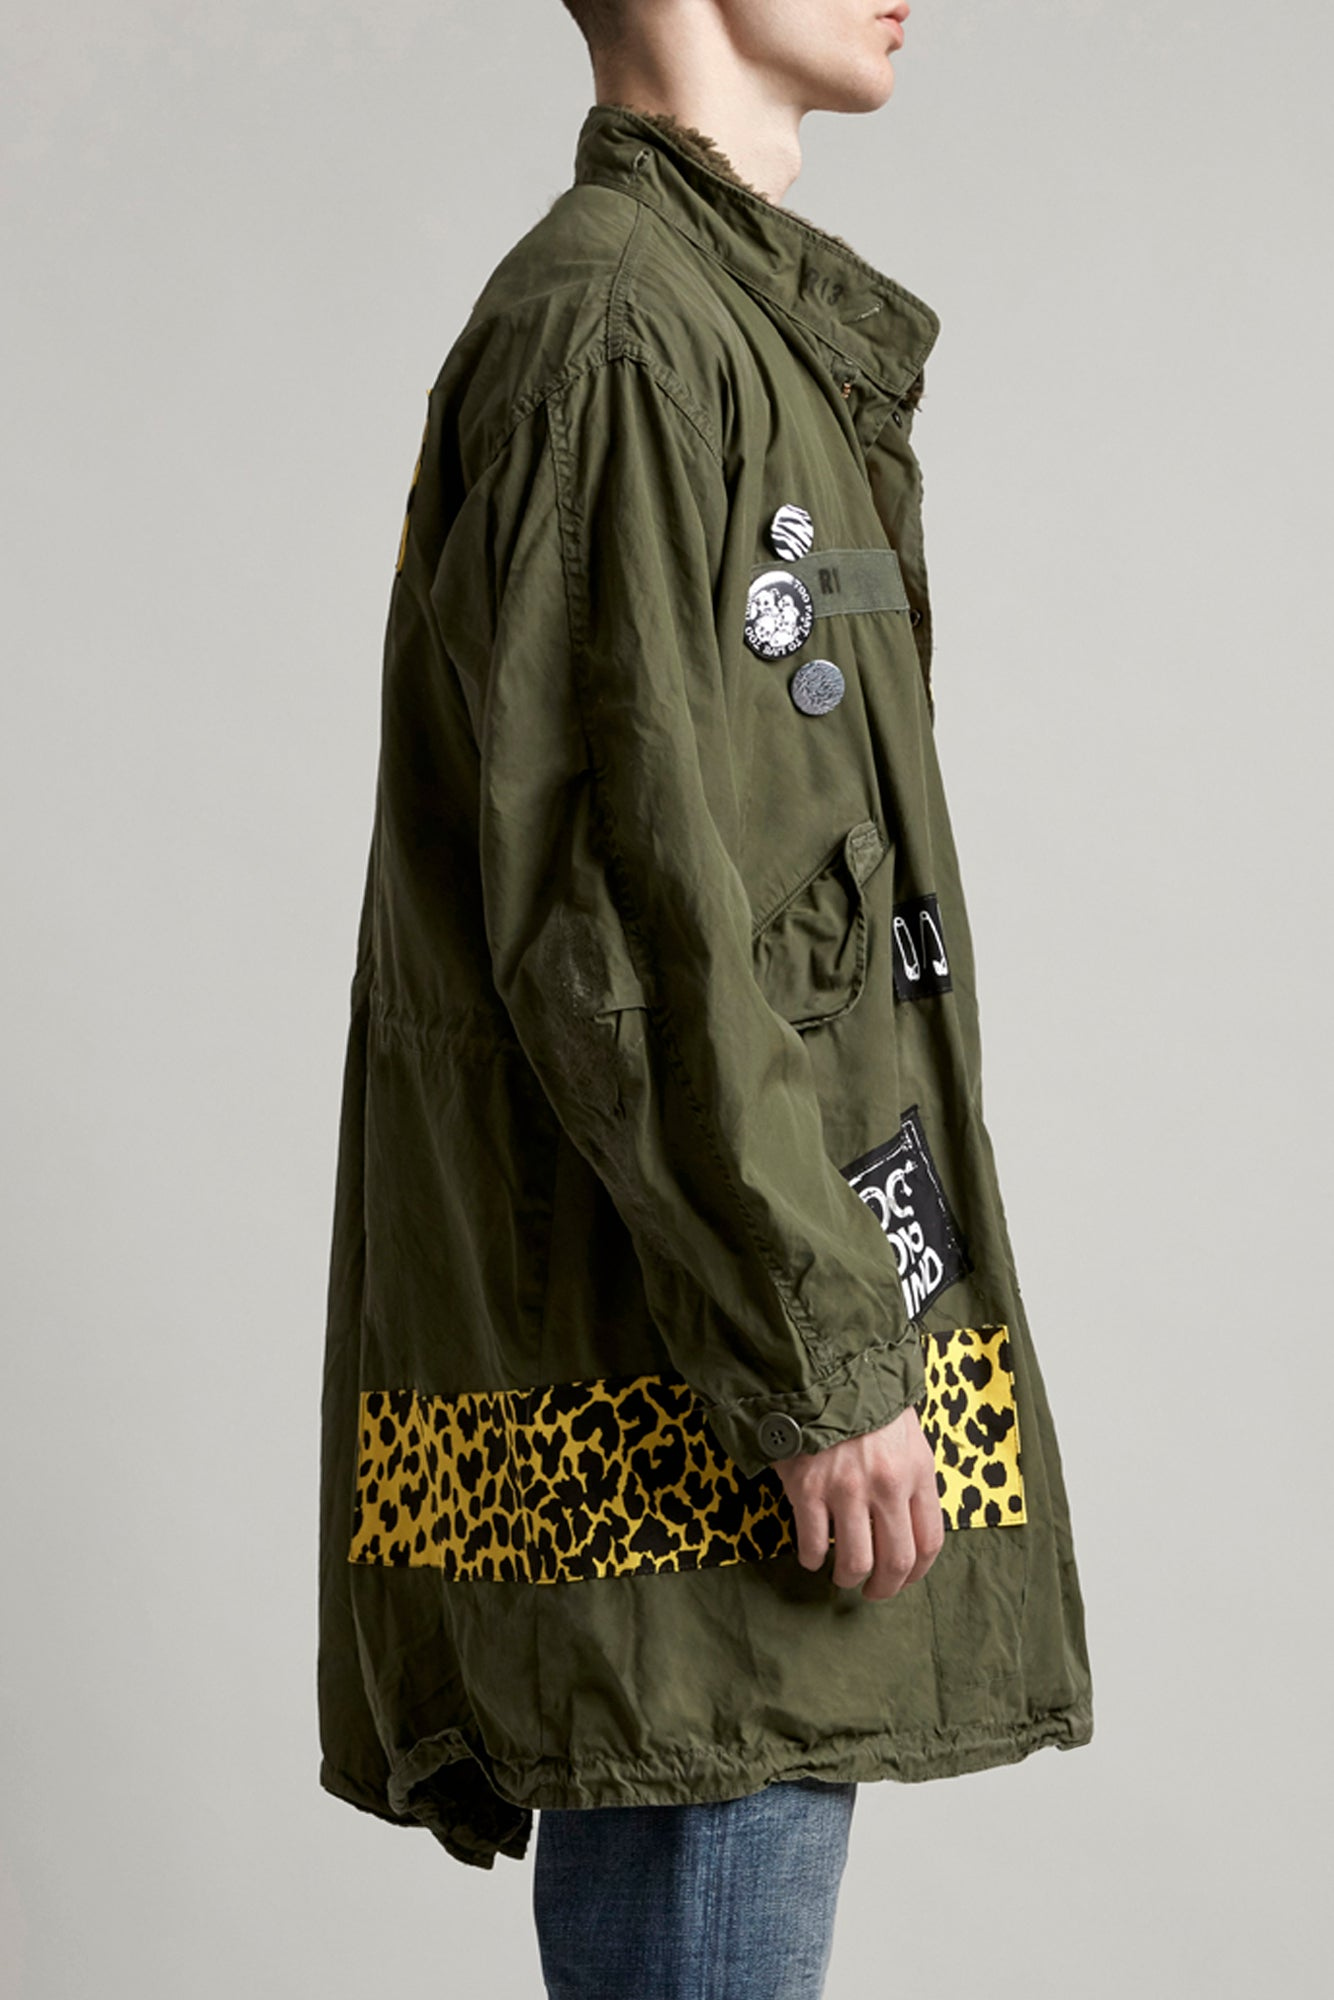 Repurposed Punk Fishtail Parka - Olive